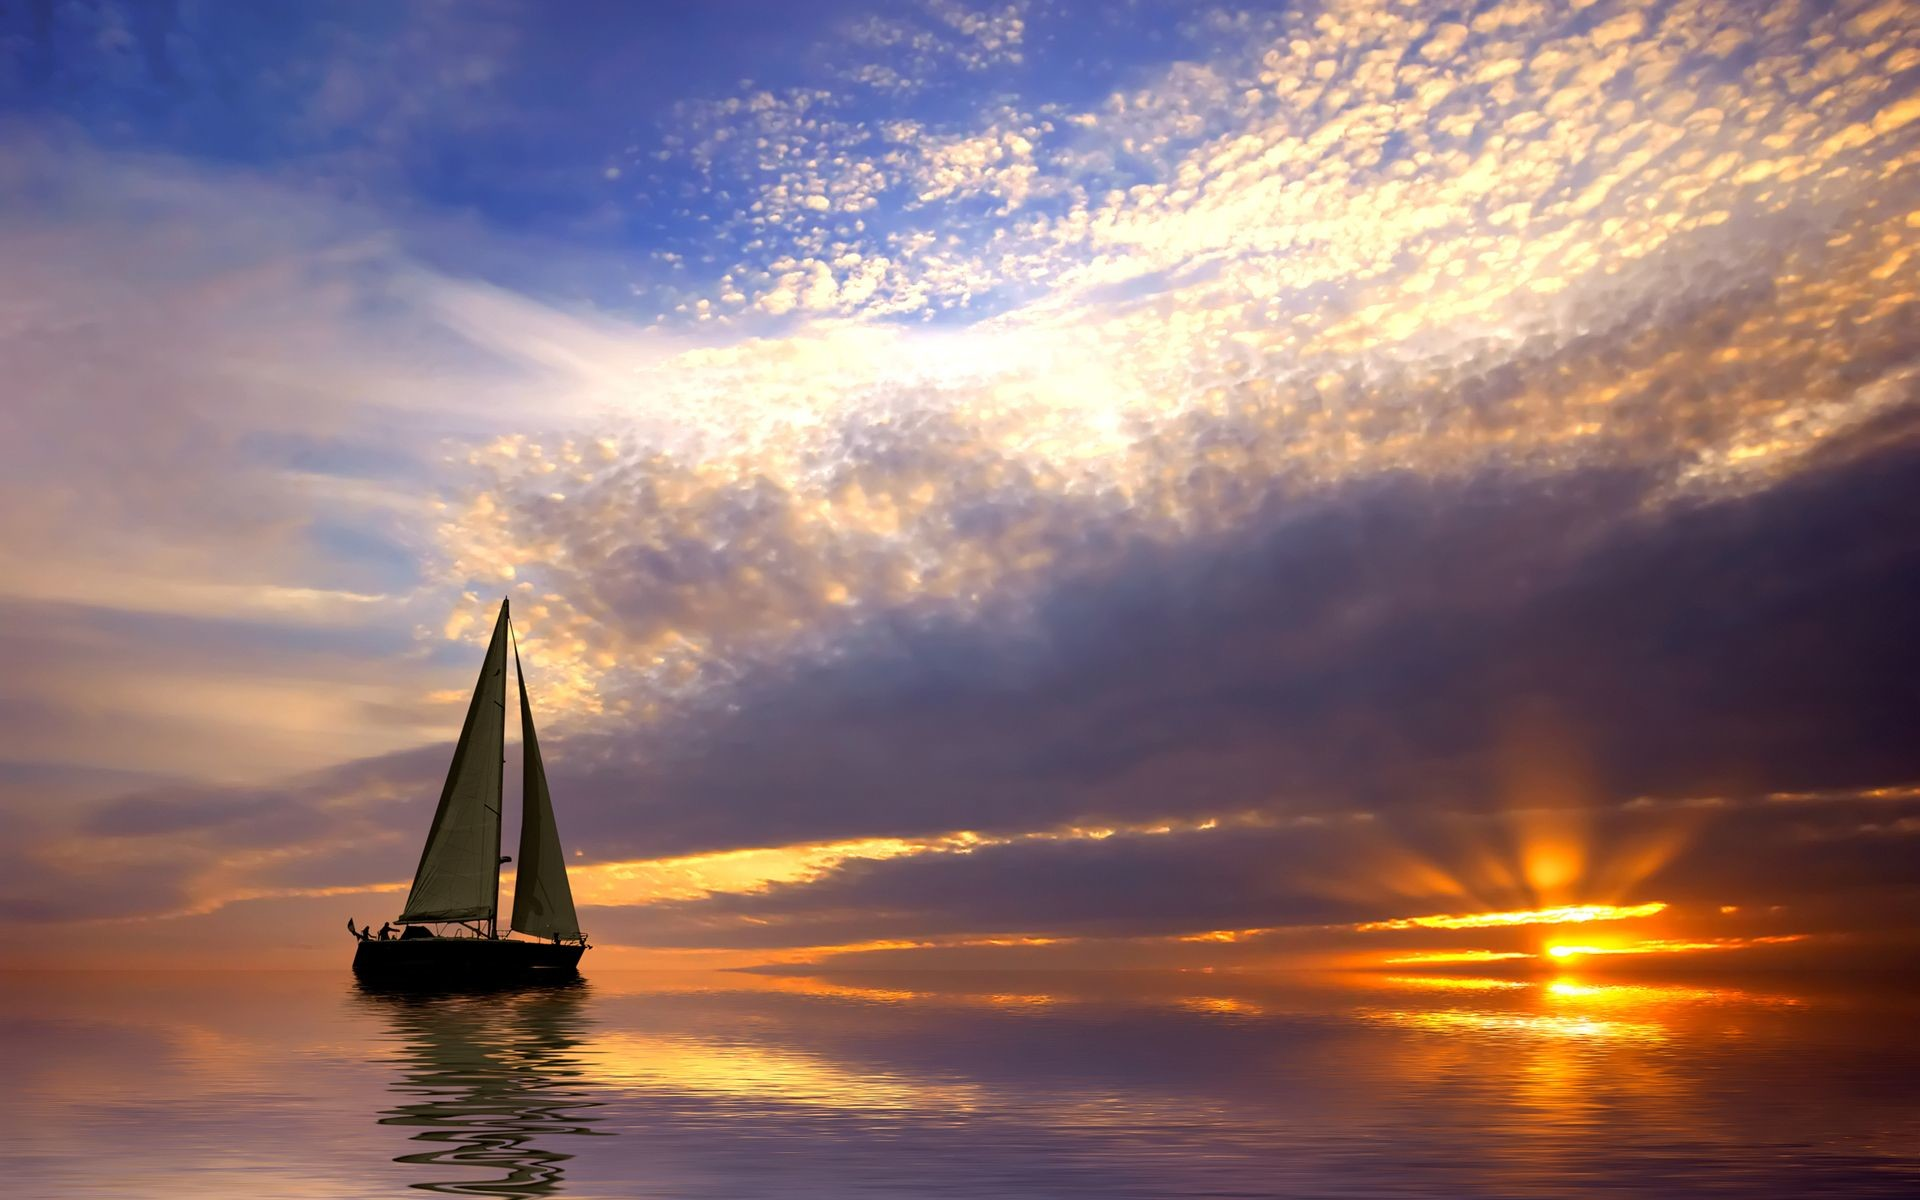 1920x1200 boat wallpaper backgrounds | beautiful sailboat hd wallpapers best desktop  background widescreen .